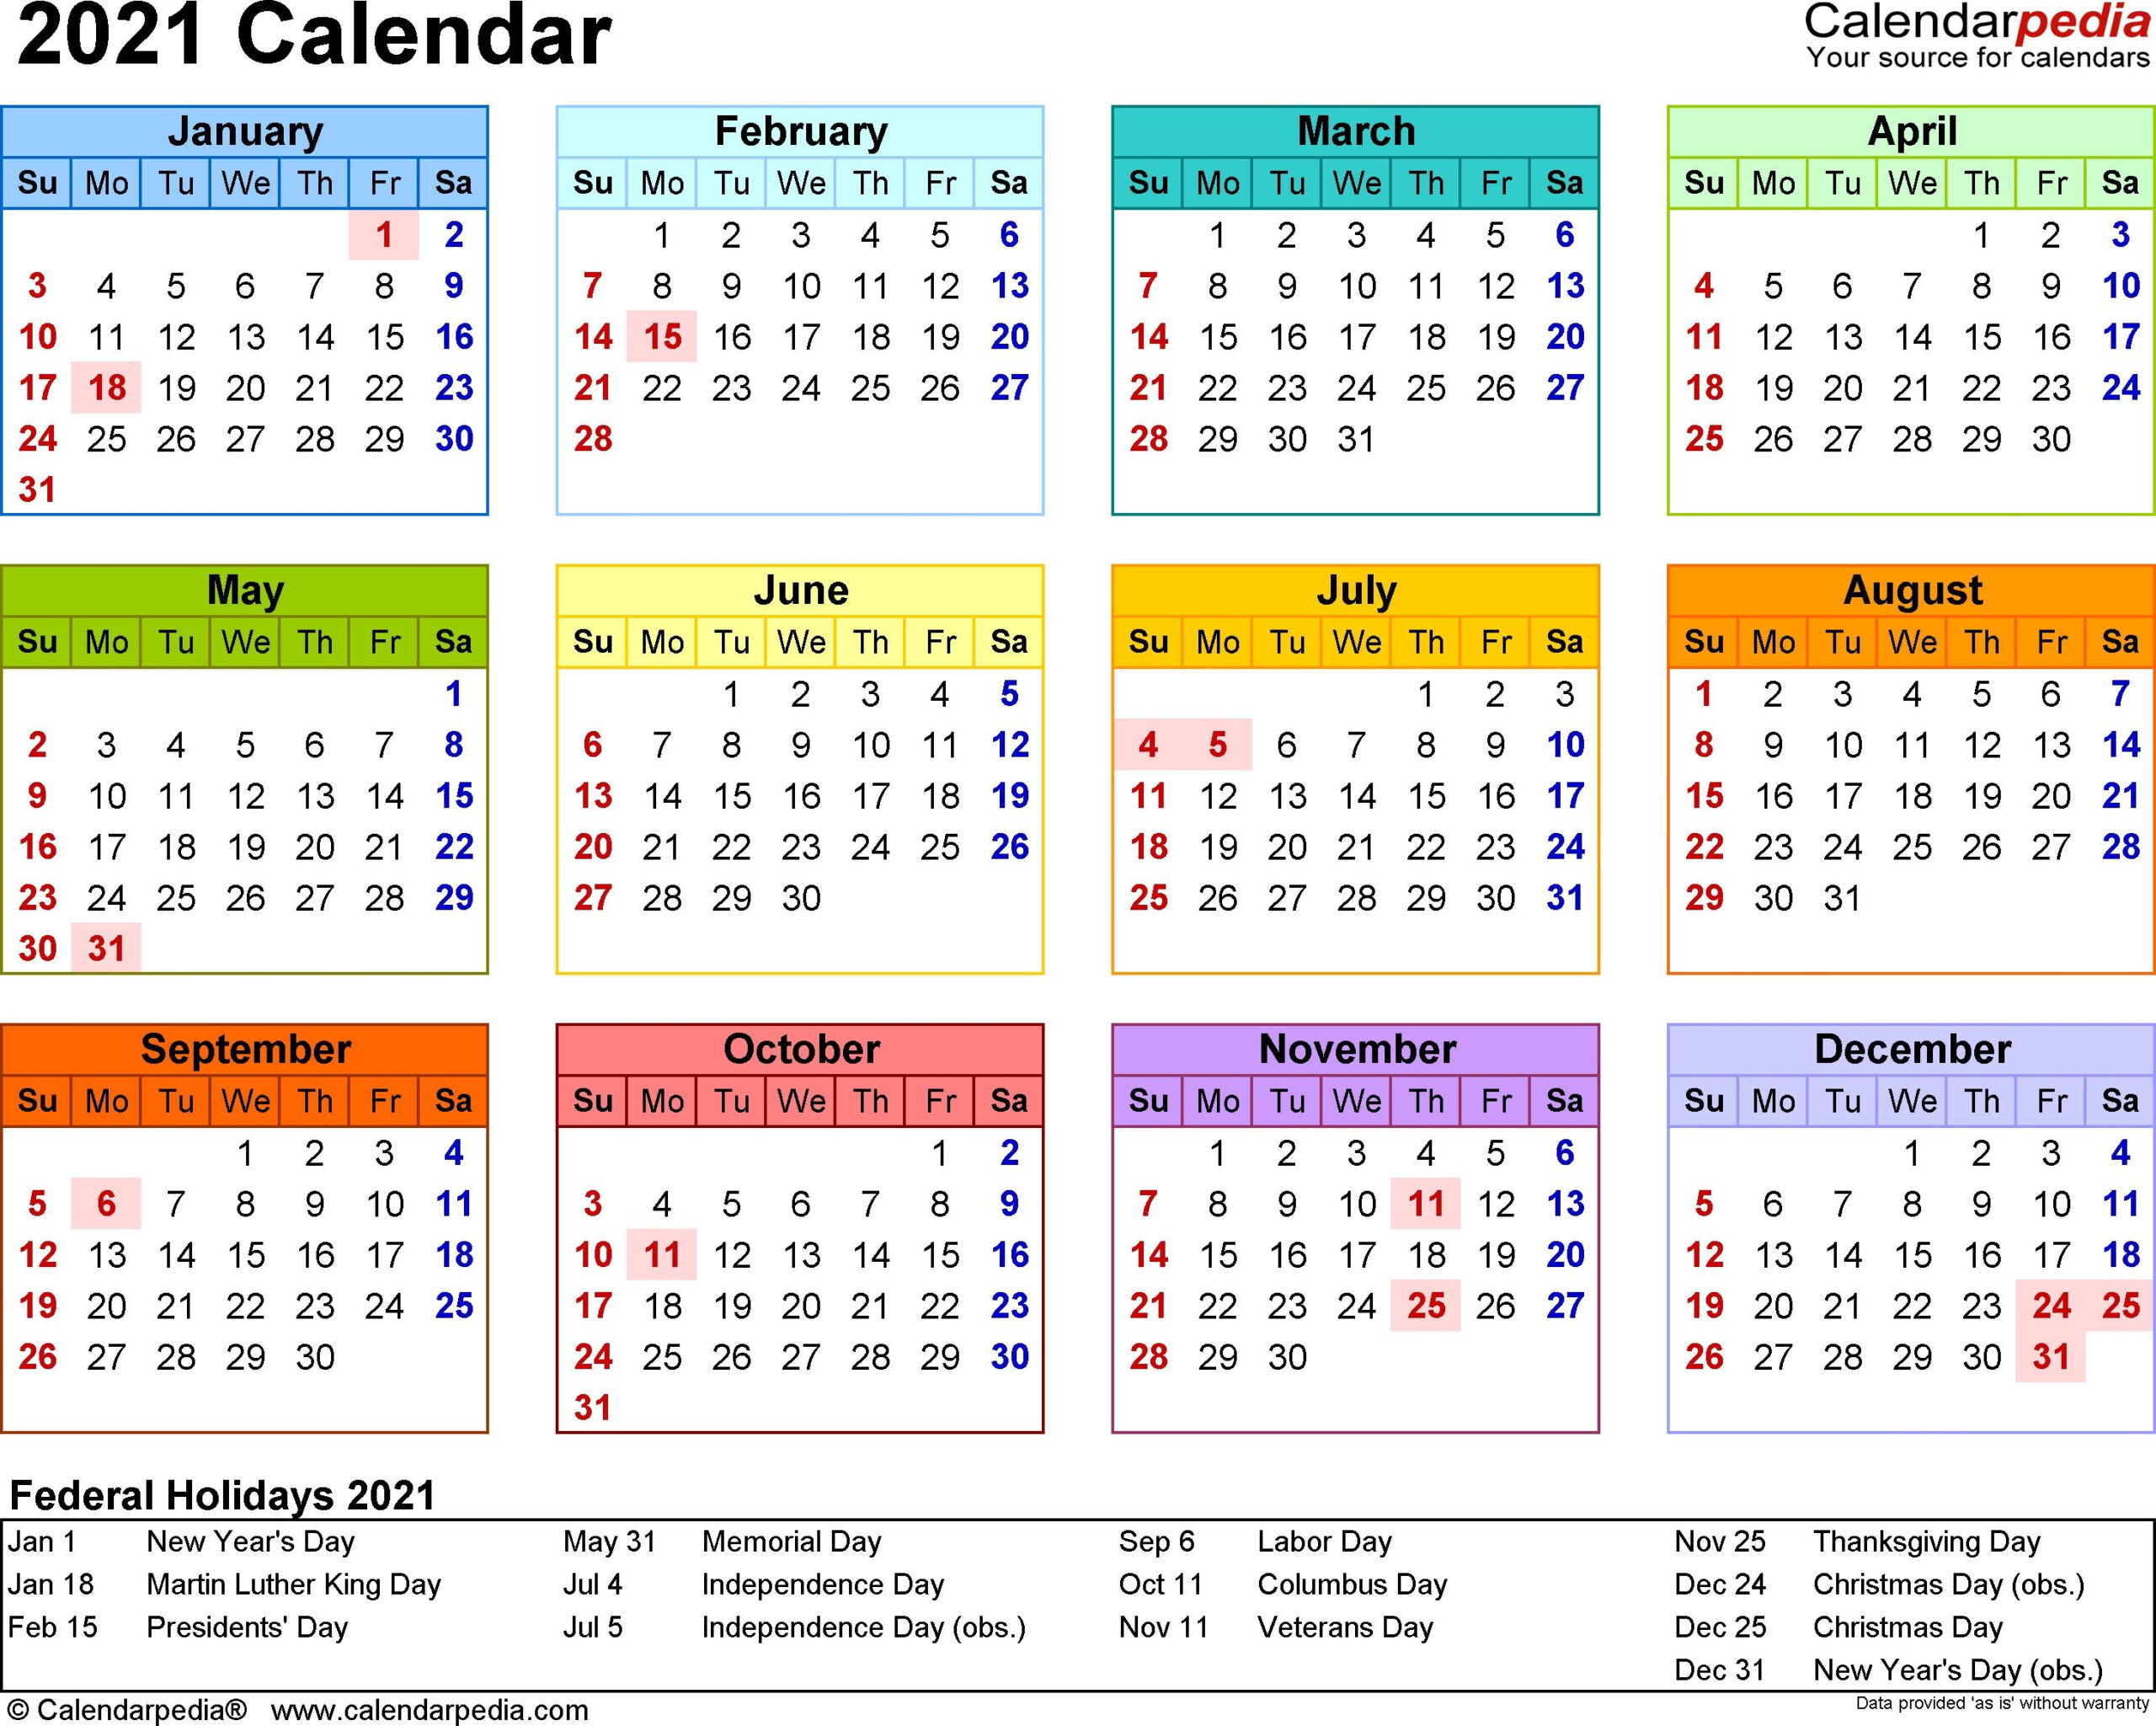 2021 Calendar Template 3 Year Calendar Full Page throughout Free 3 Month Calendar One Page 2021